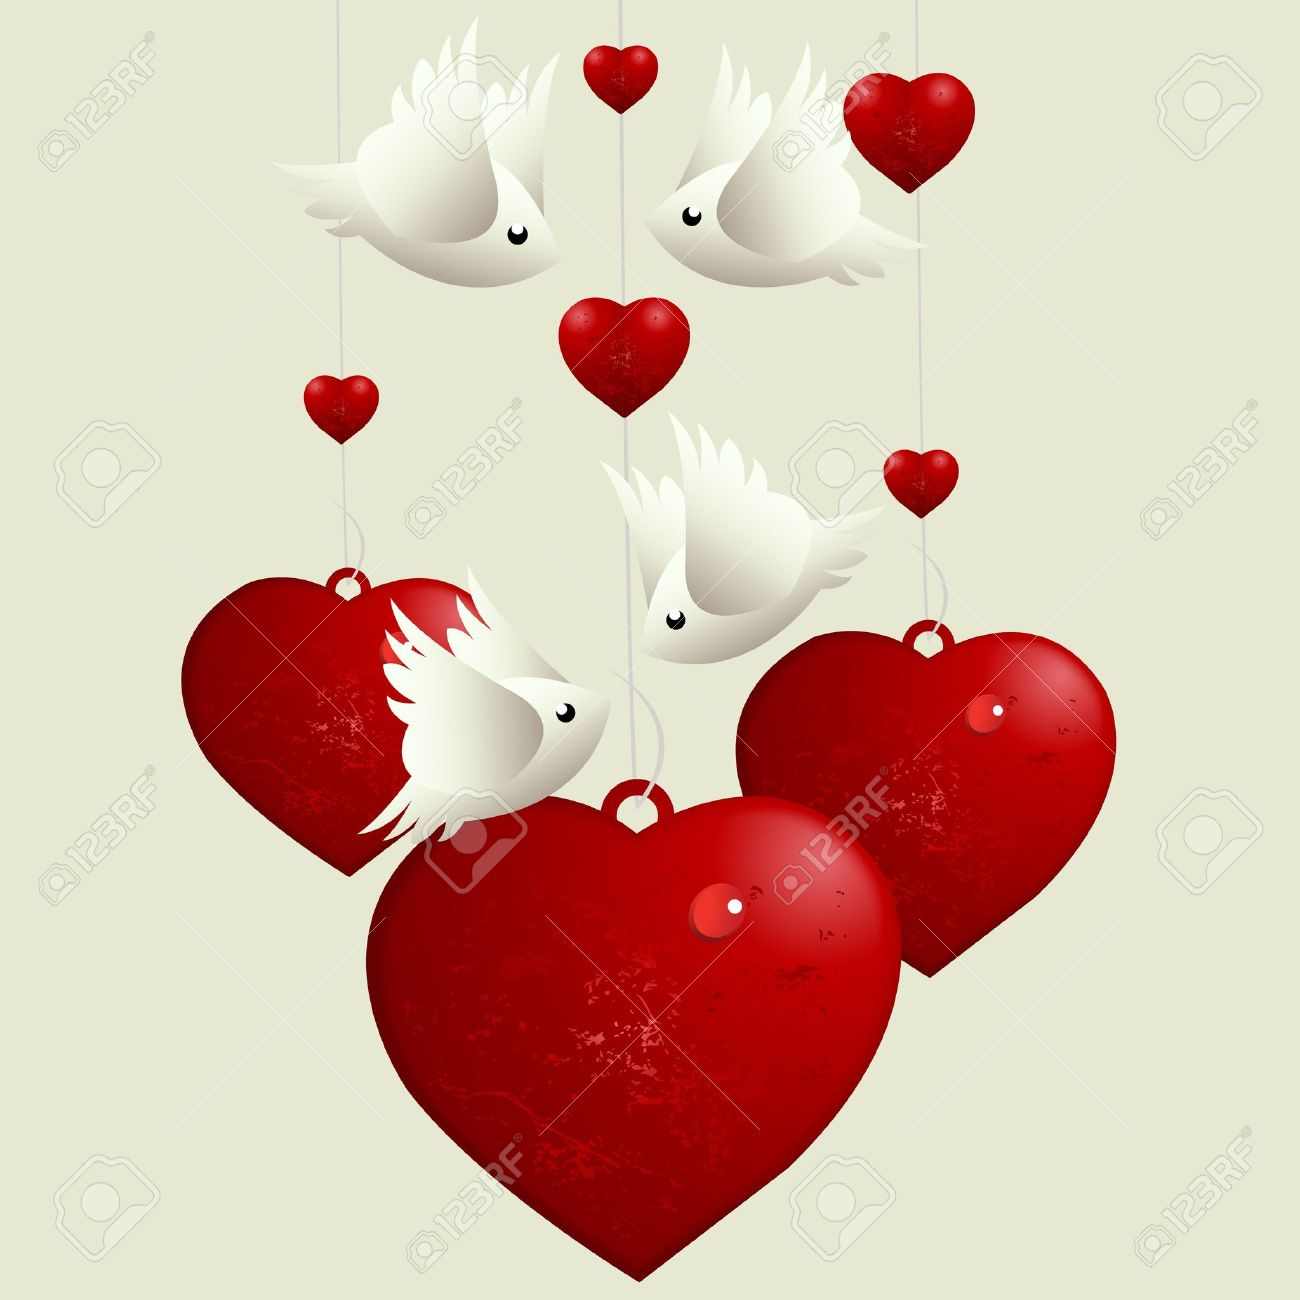 valentine's day concept, lovebirds flying around love hearts royalty